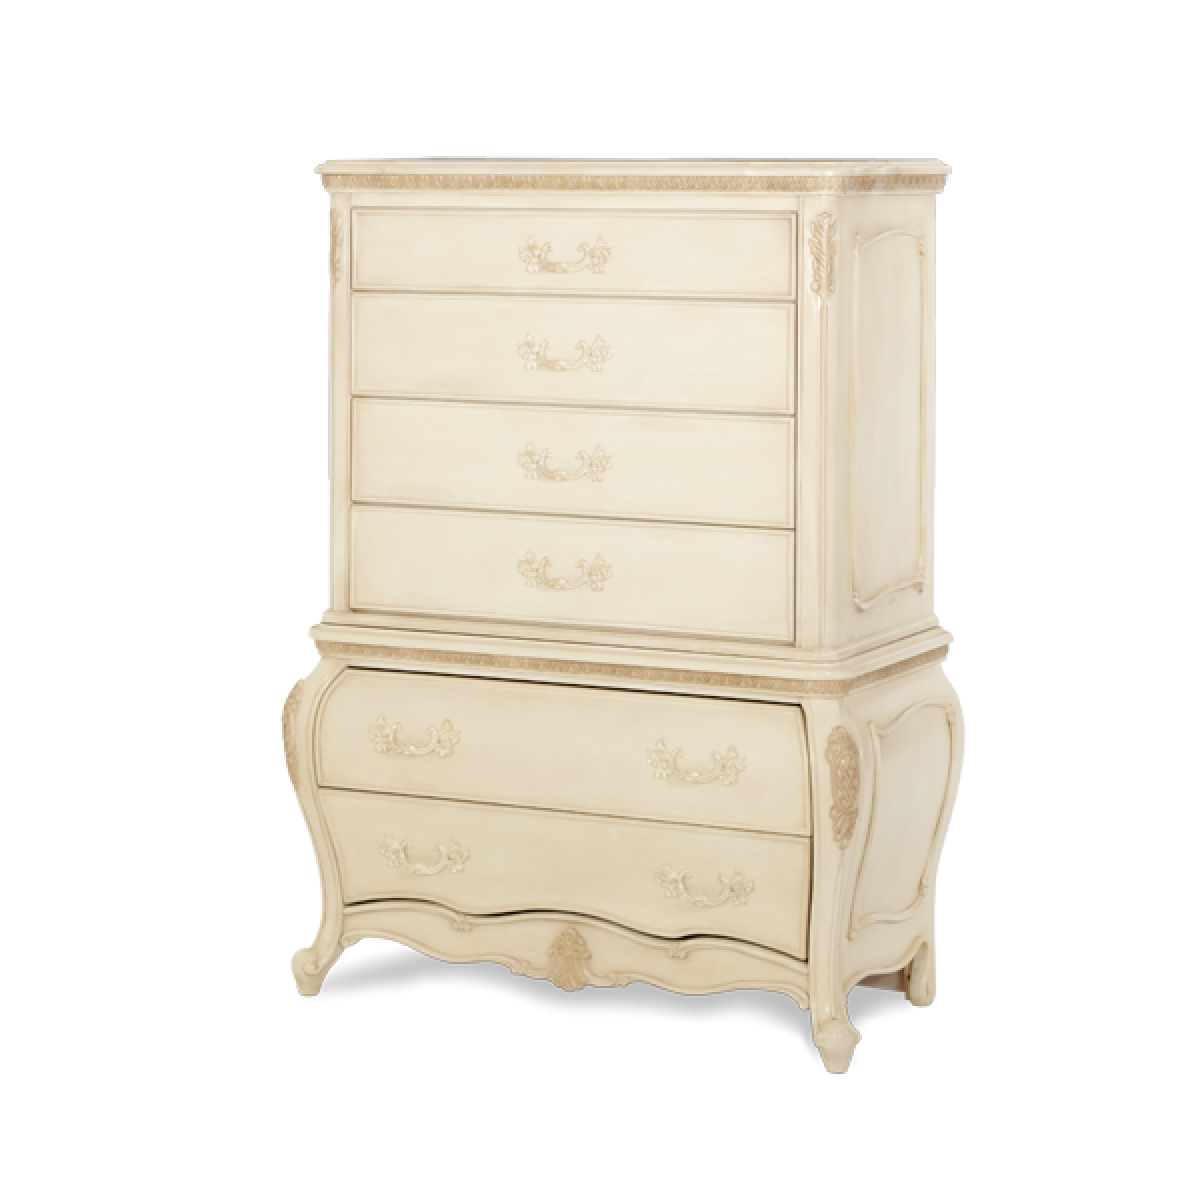 AICO Chest(sale) Furniture, Chest of drawers, 6 drawer chest